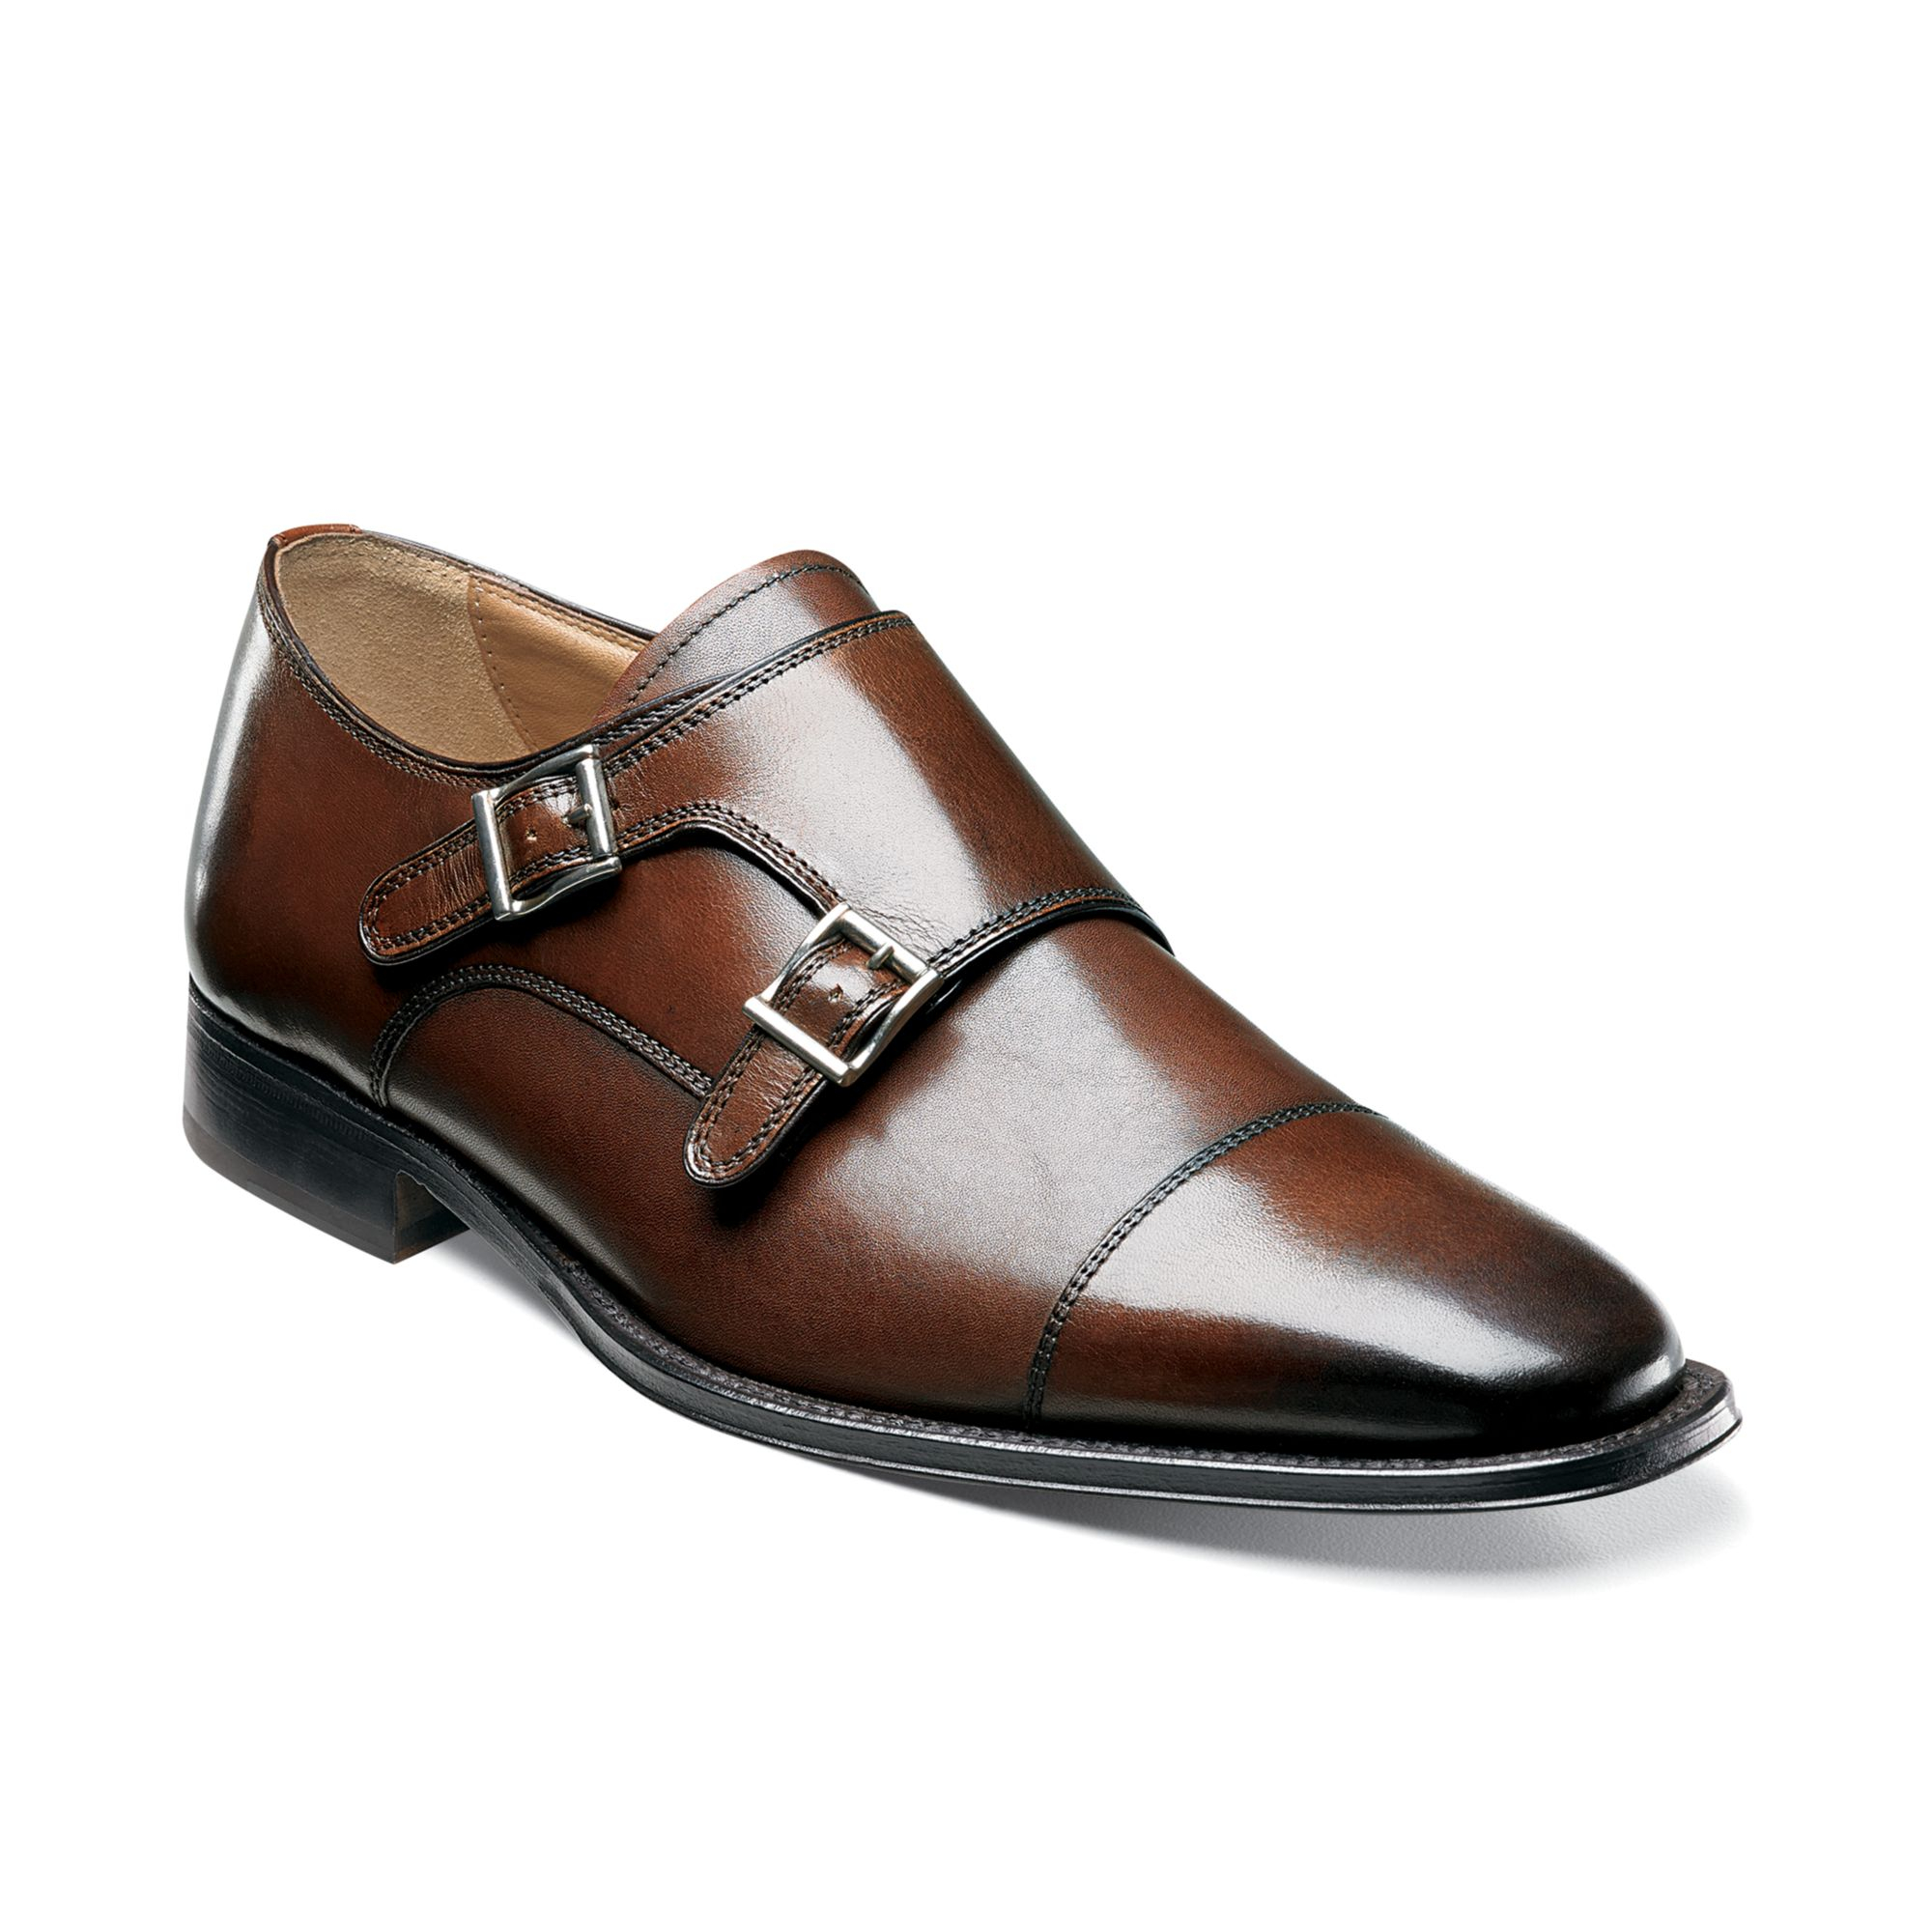 Brown Strap Shoes